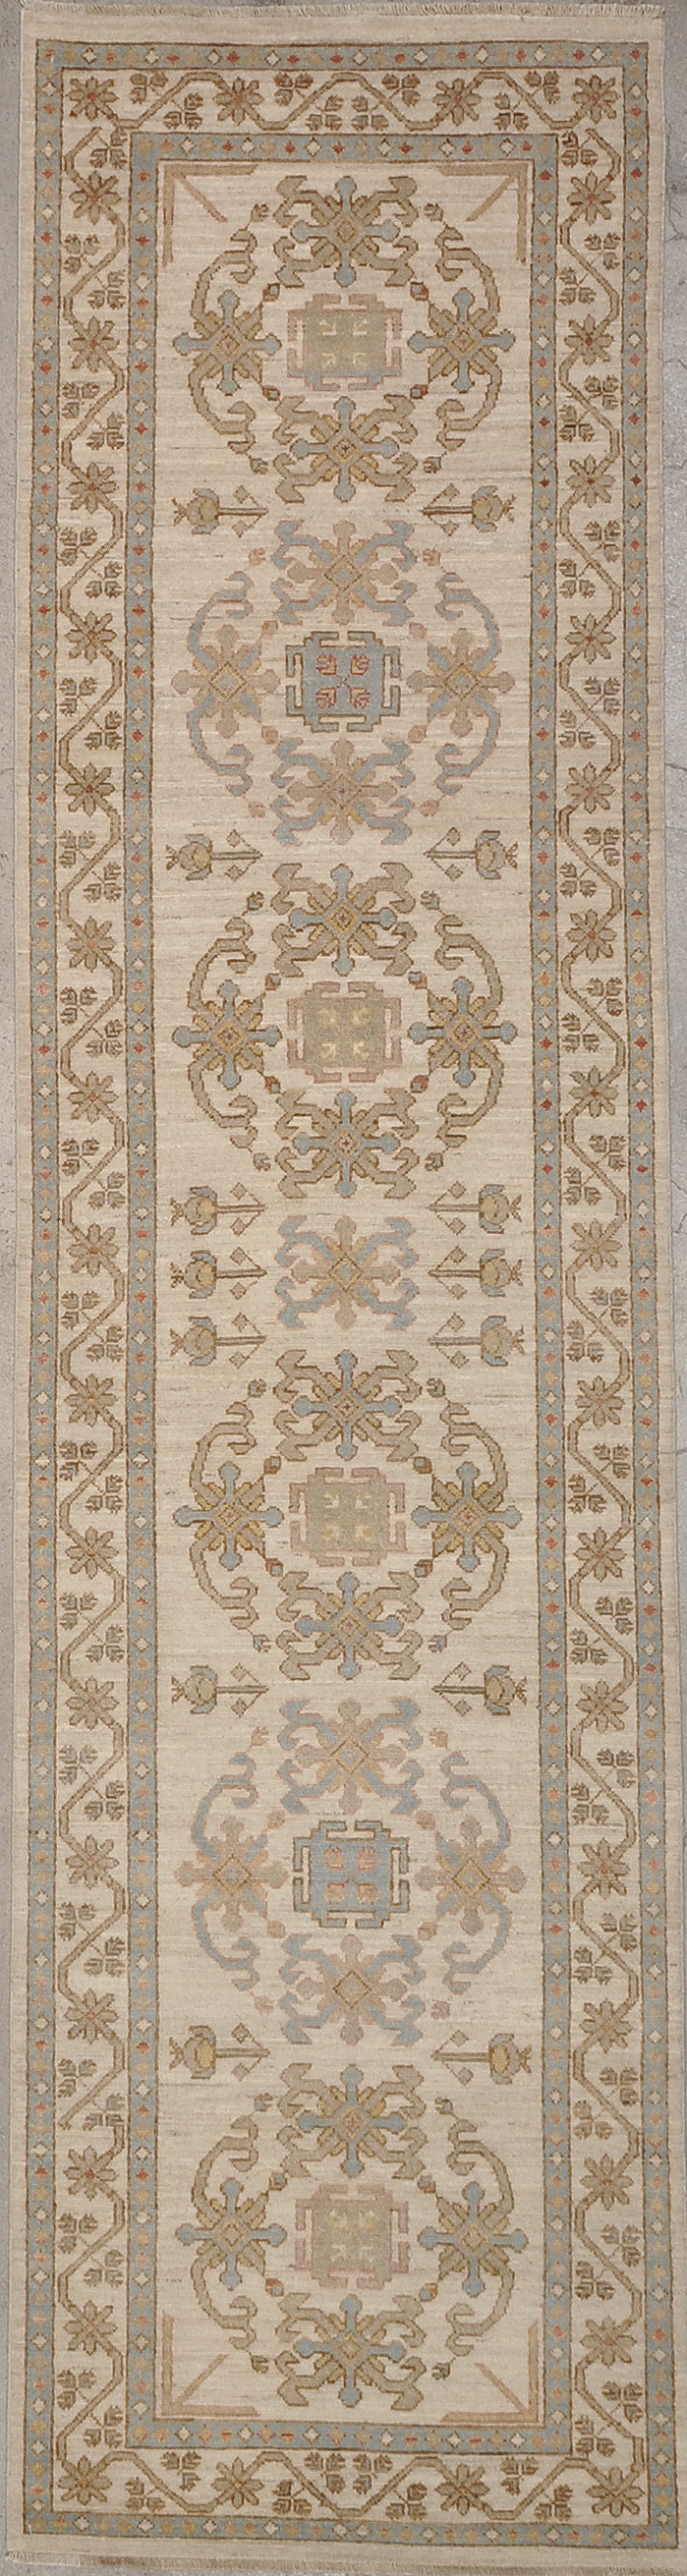 Ziegler & Co Oushak rugs and more oriental carpet 34109-